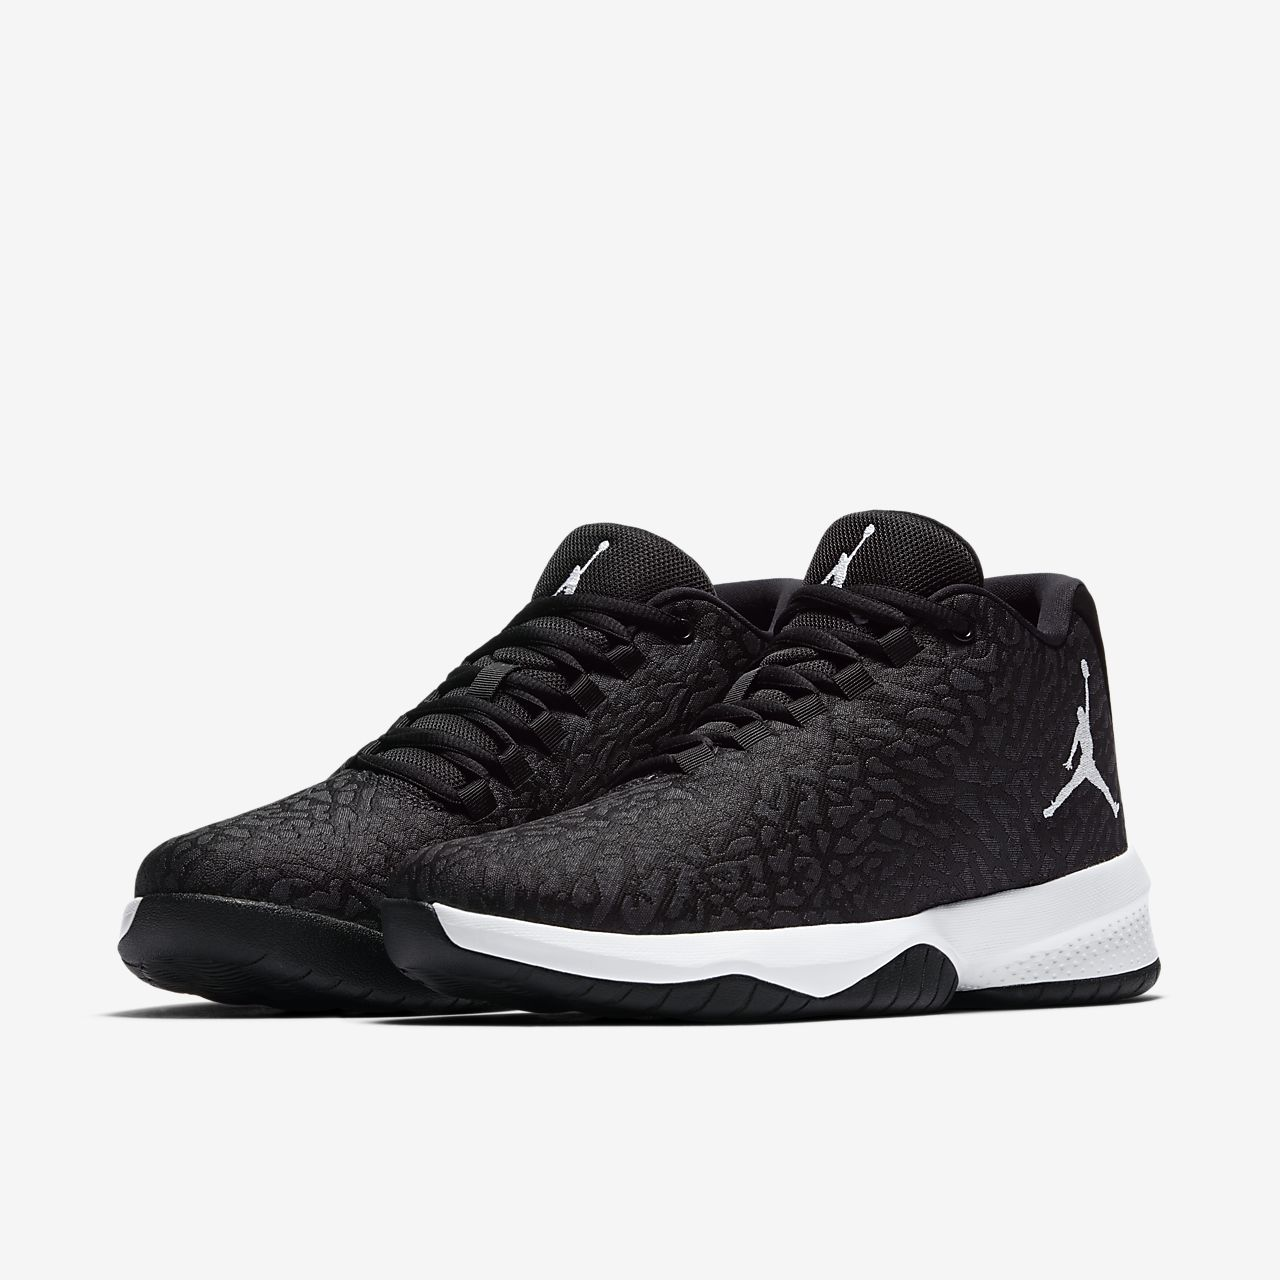 online store a1bc7 6f0f6 Nike Jordan B.Fly Black Grey Men's Basketball Shoes -  mainstreetblytheville.org